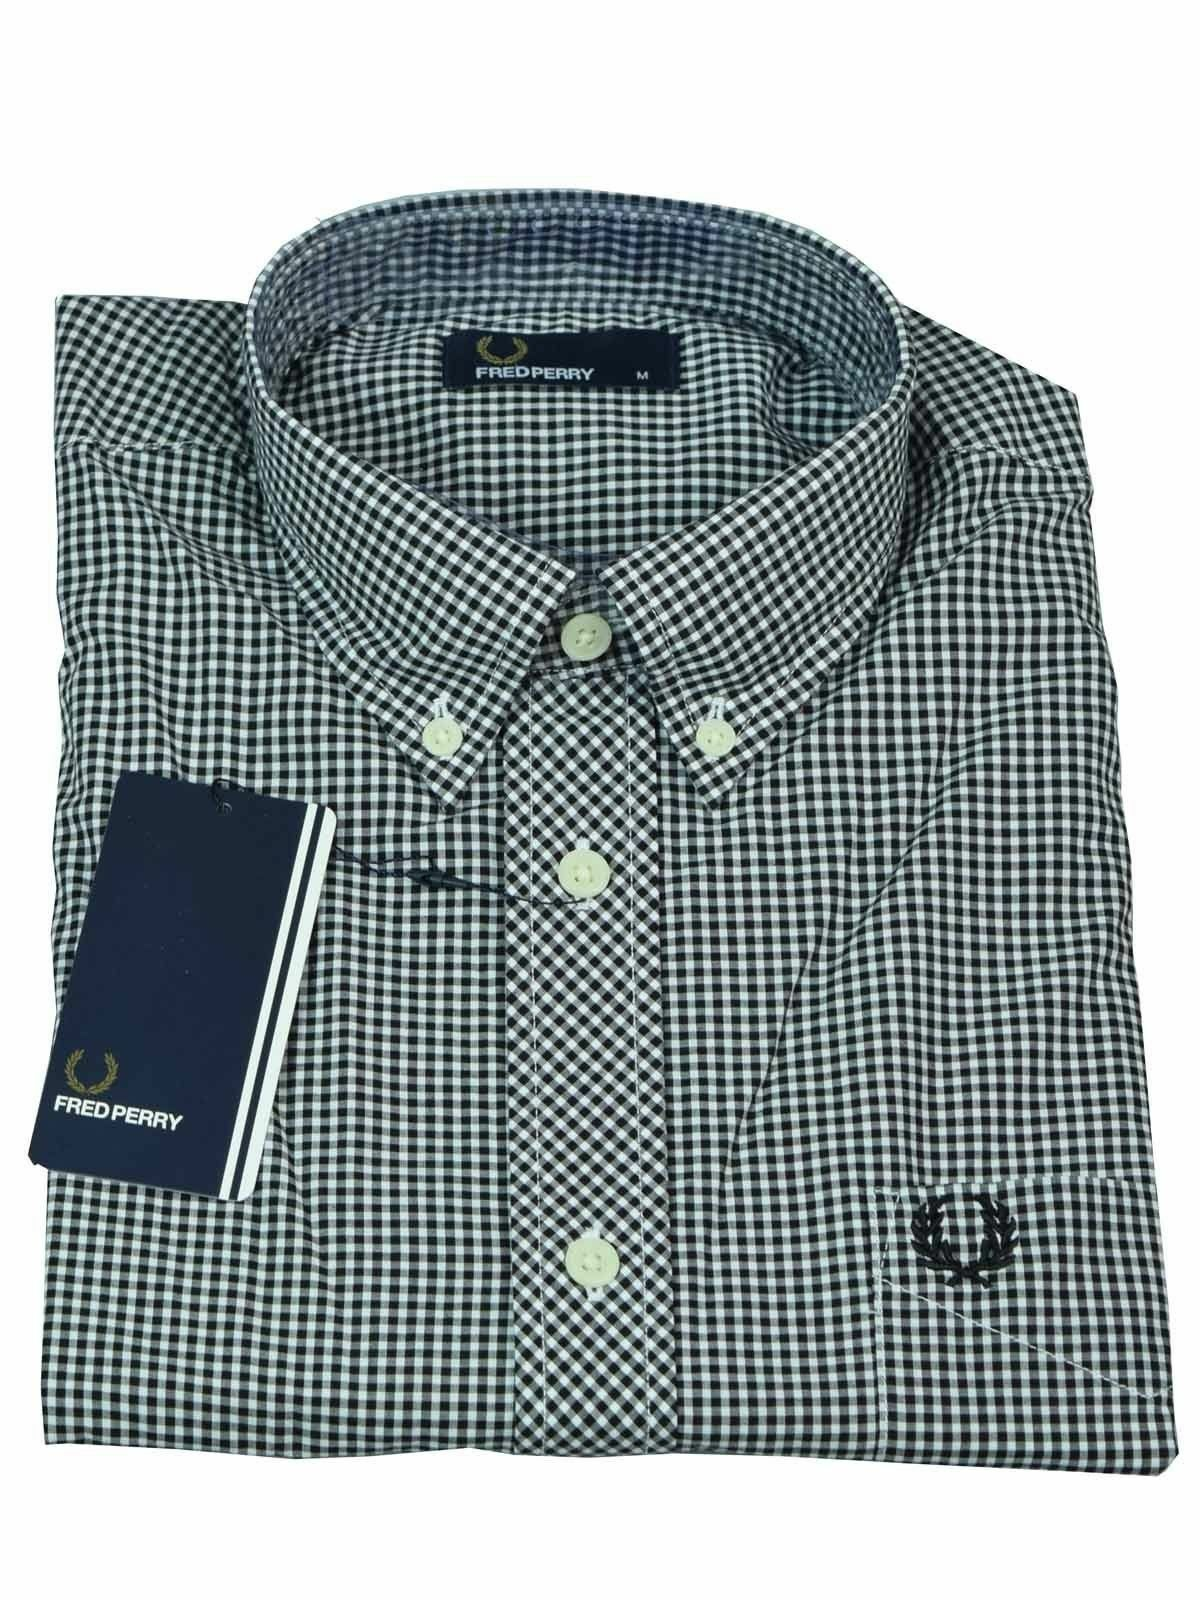 Fred Perry Button-Down Langarmhemd M8299 102 black   white  6123